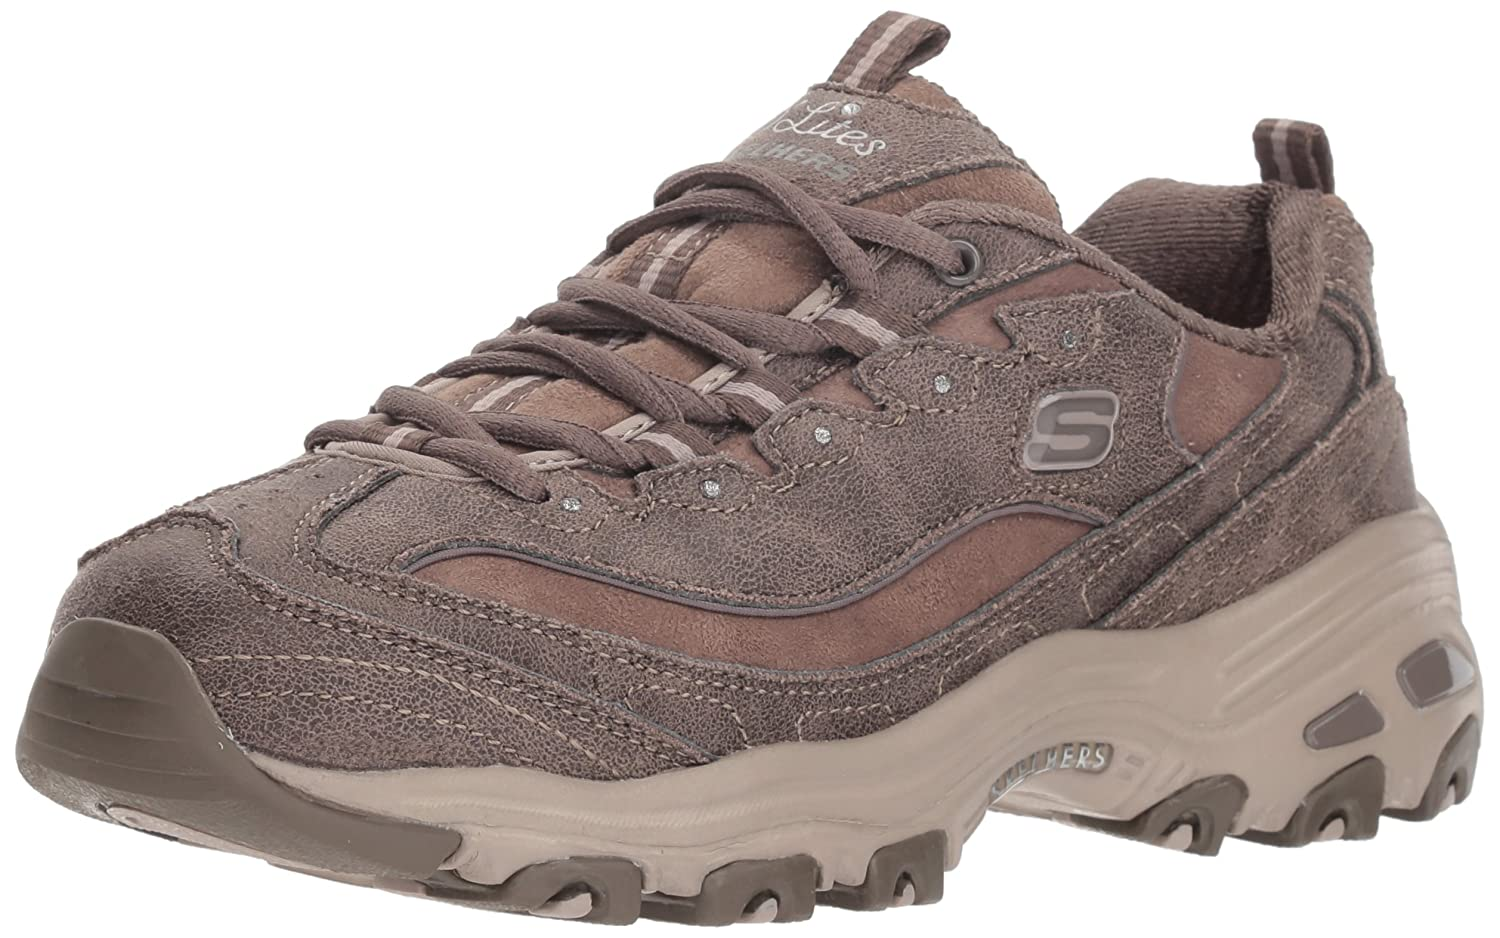 Skechers D Lites-New B079YBJG24 School, D Baskets Femme Taupe Dark Taupe a81a2a0 - reprogrammed.space